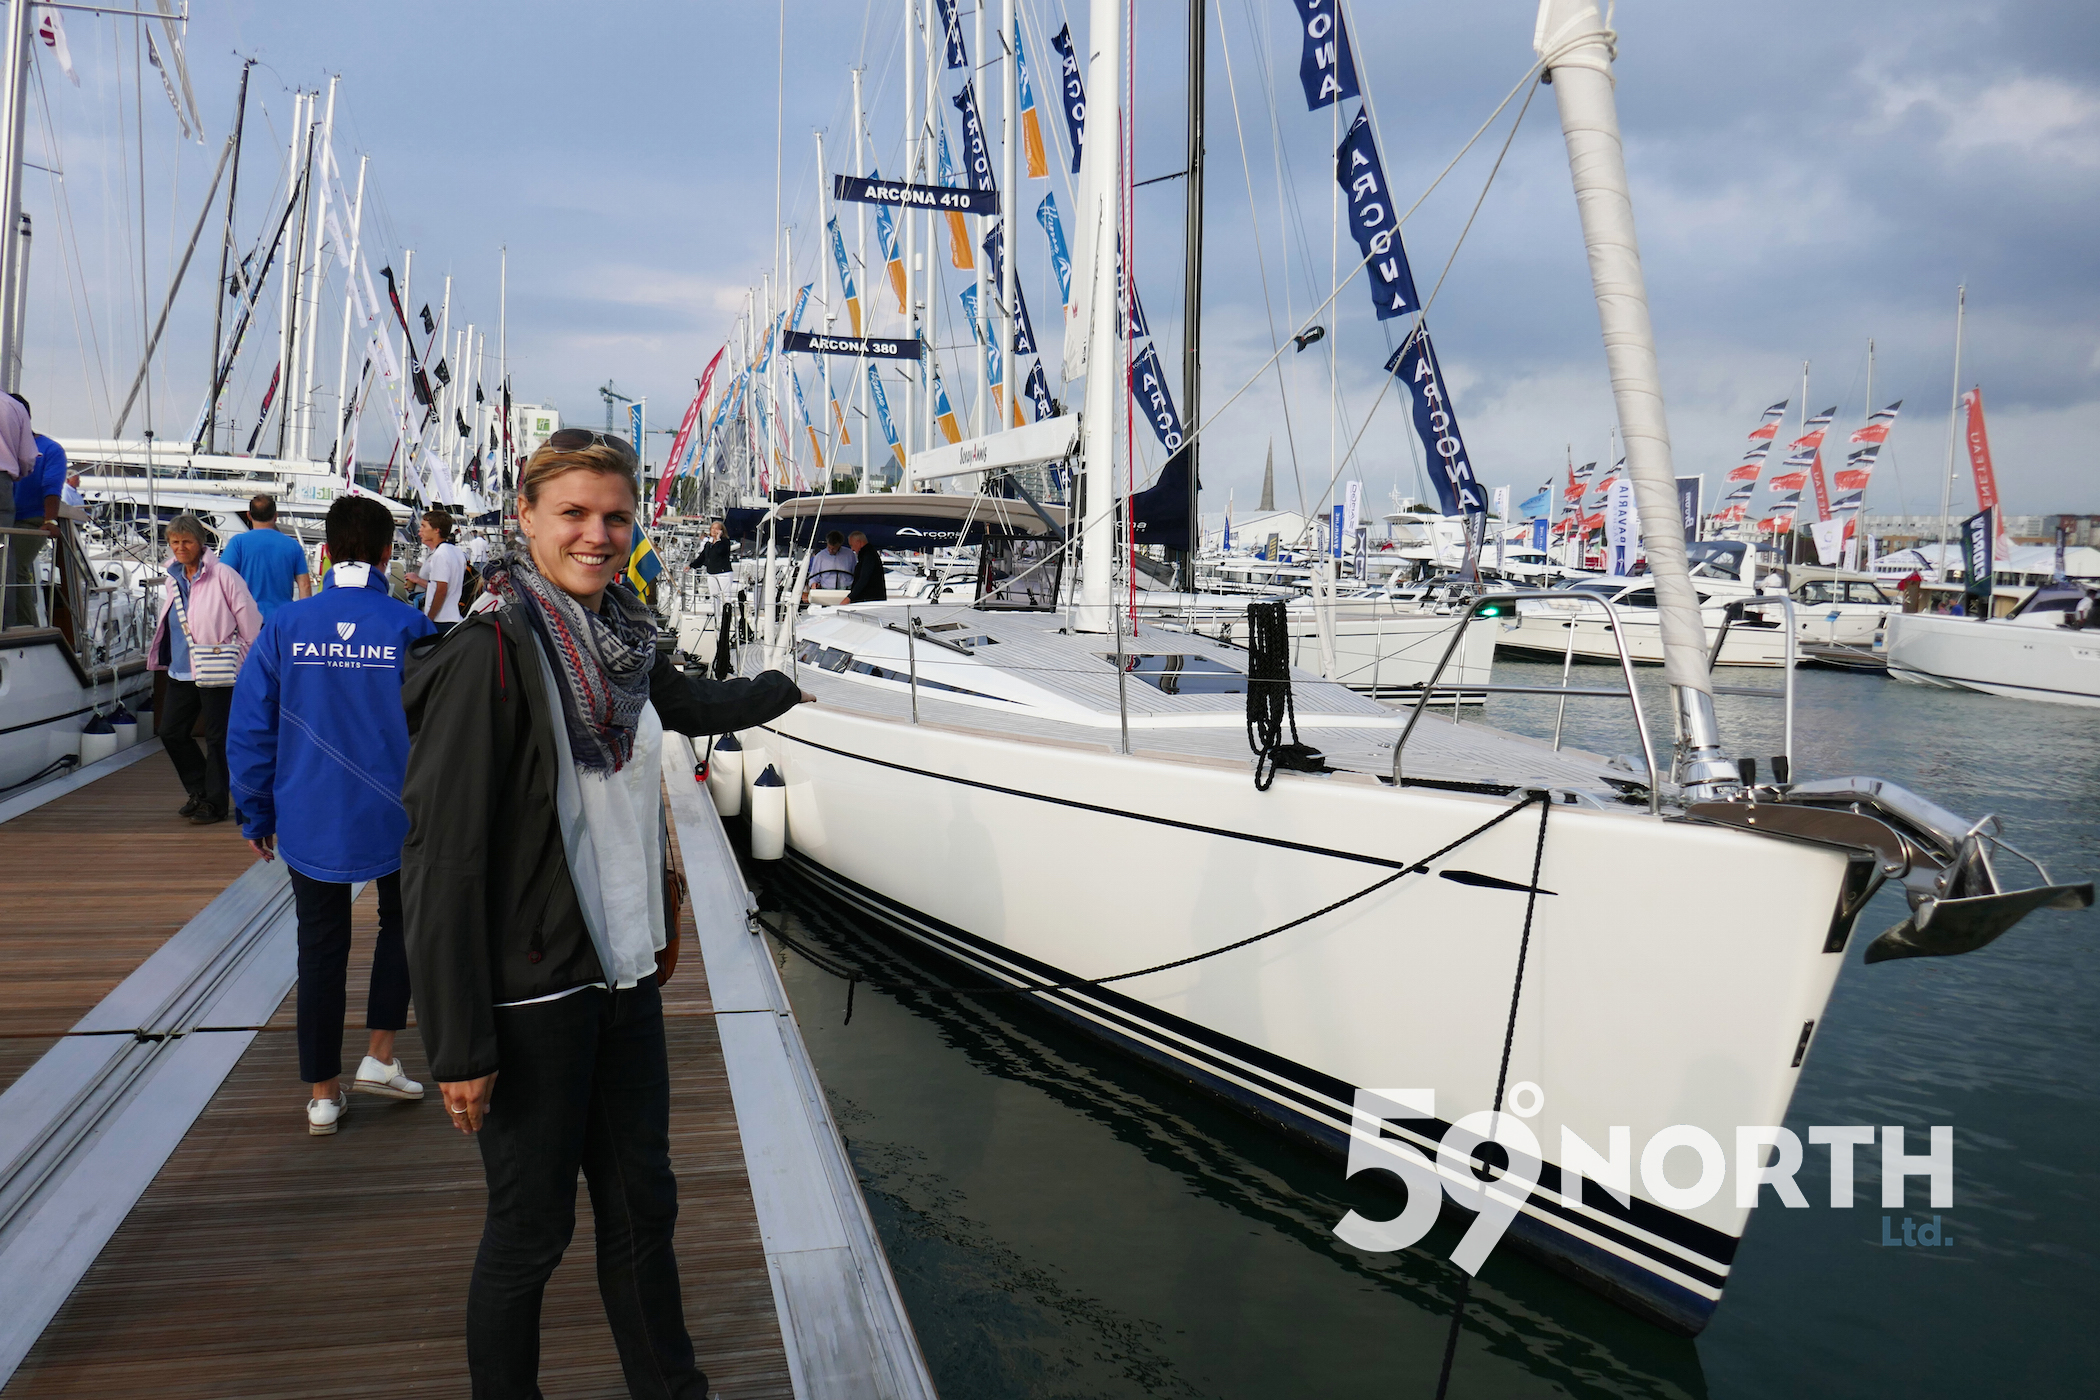 Checking out the new Swan 54 at the Southampton Boat Show. Sept. 2016